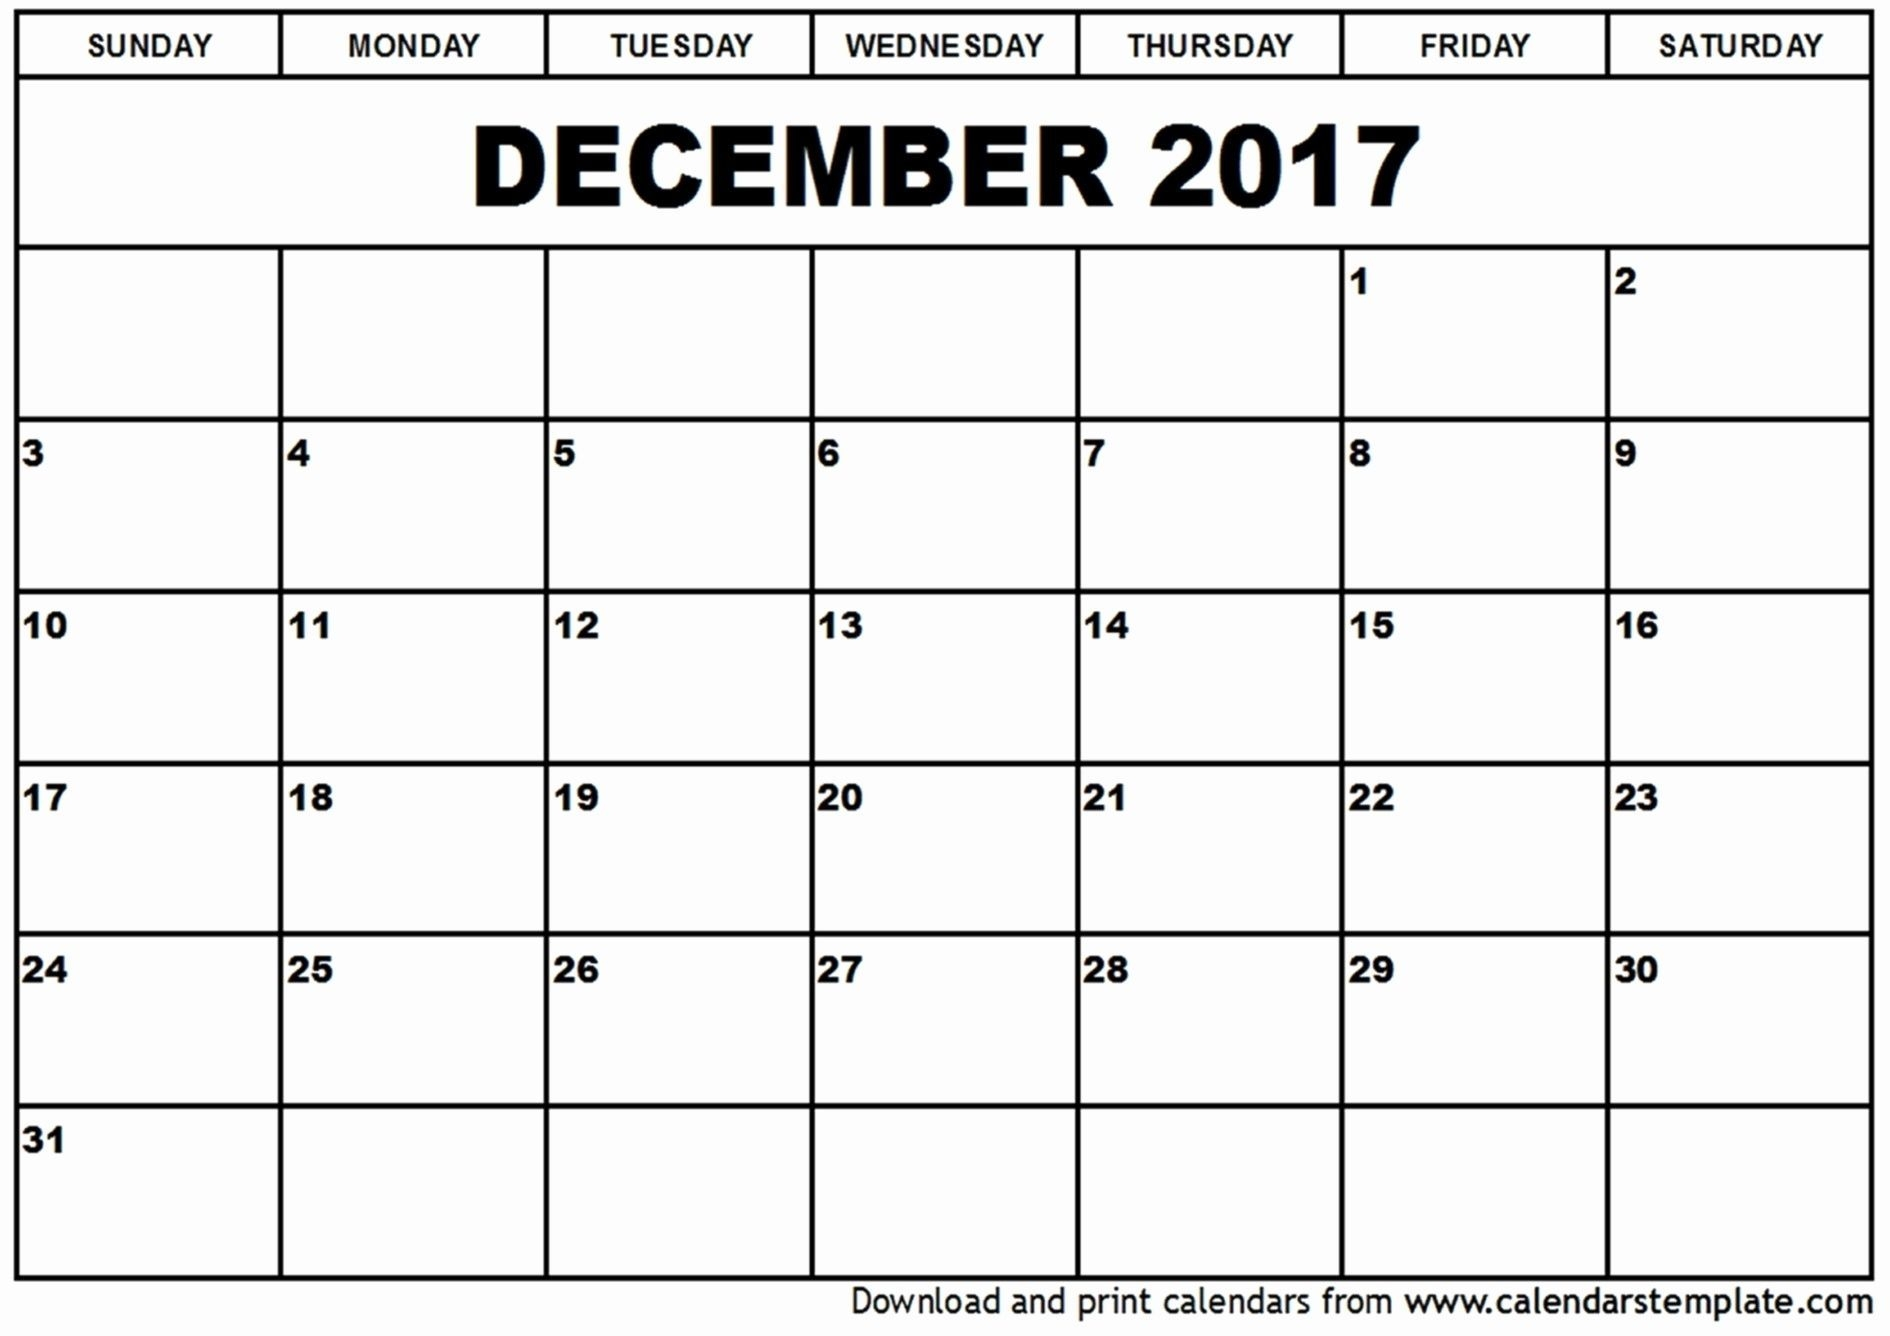 Printable Calendar I Can Type On | Free Calendar Template